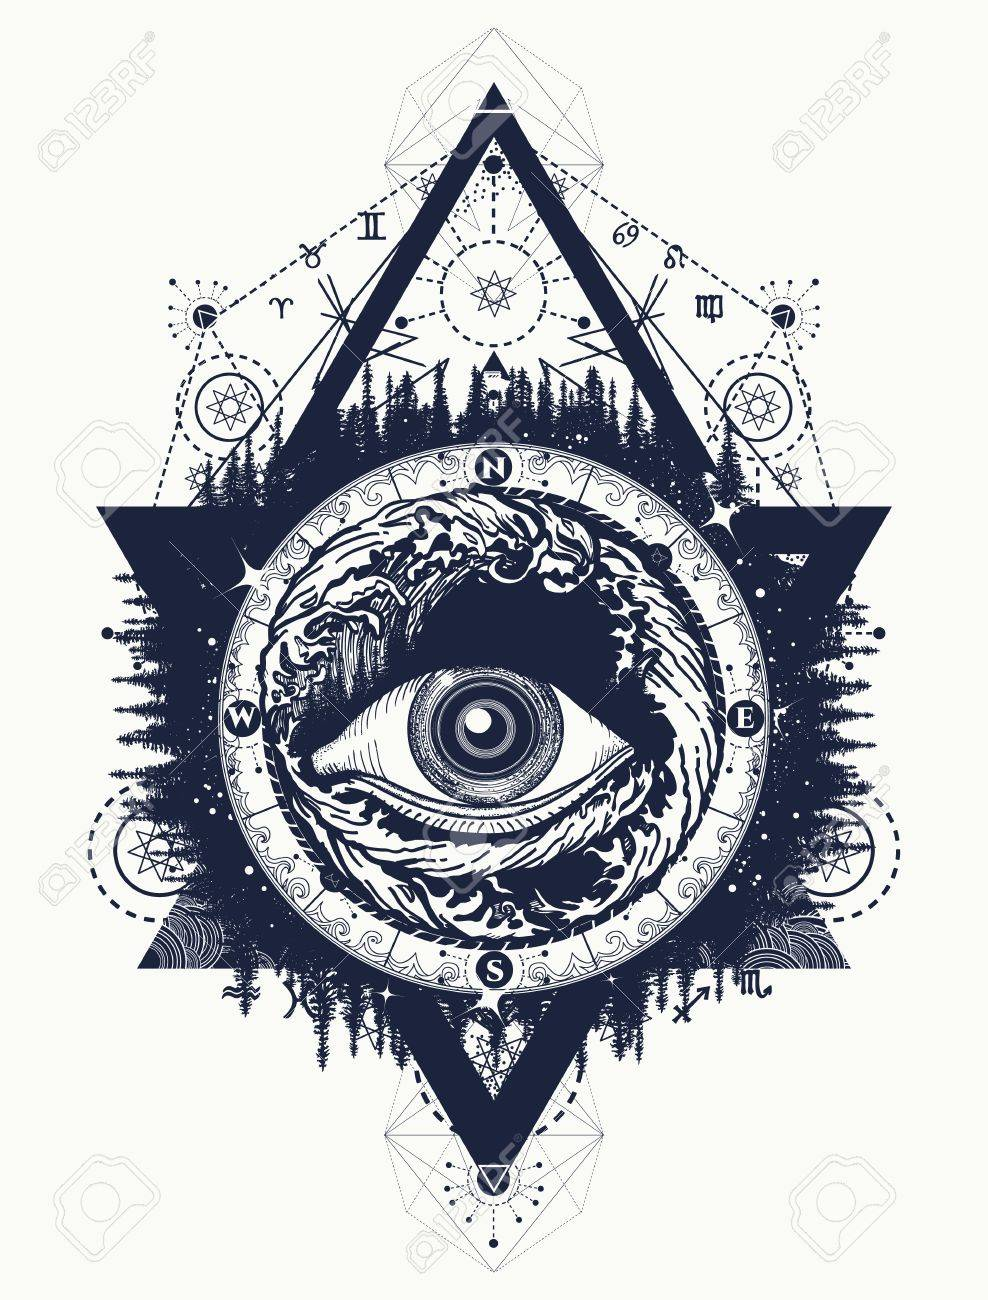 All Seeing Eye Tattoo Tourism In A Mystical Style Vector Of The Storm